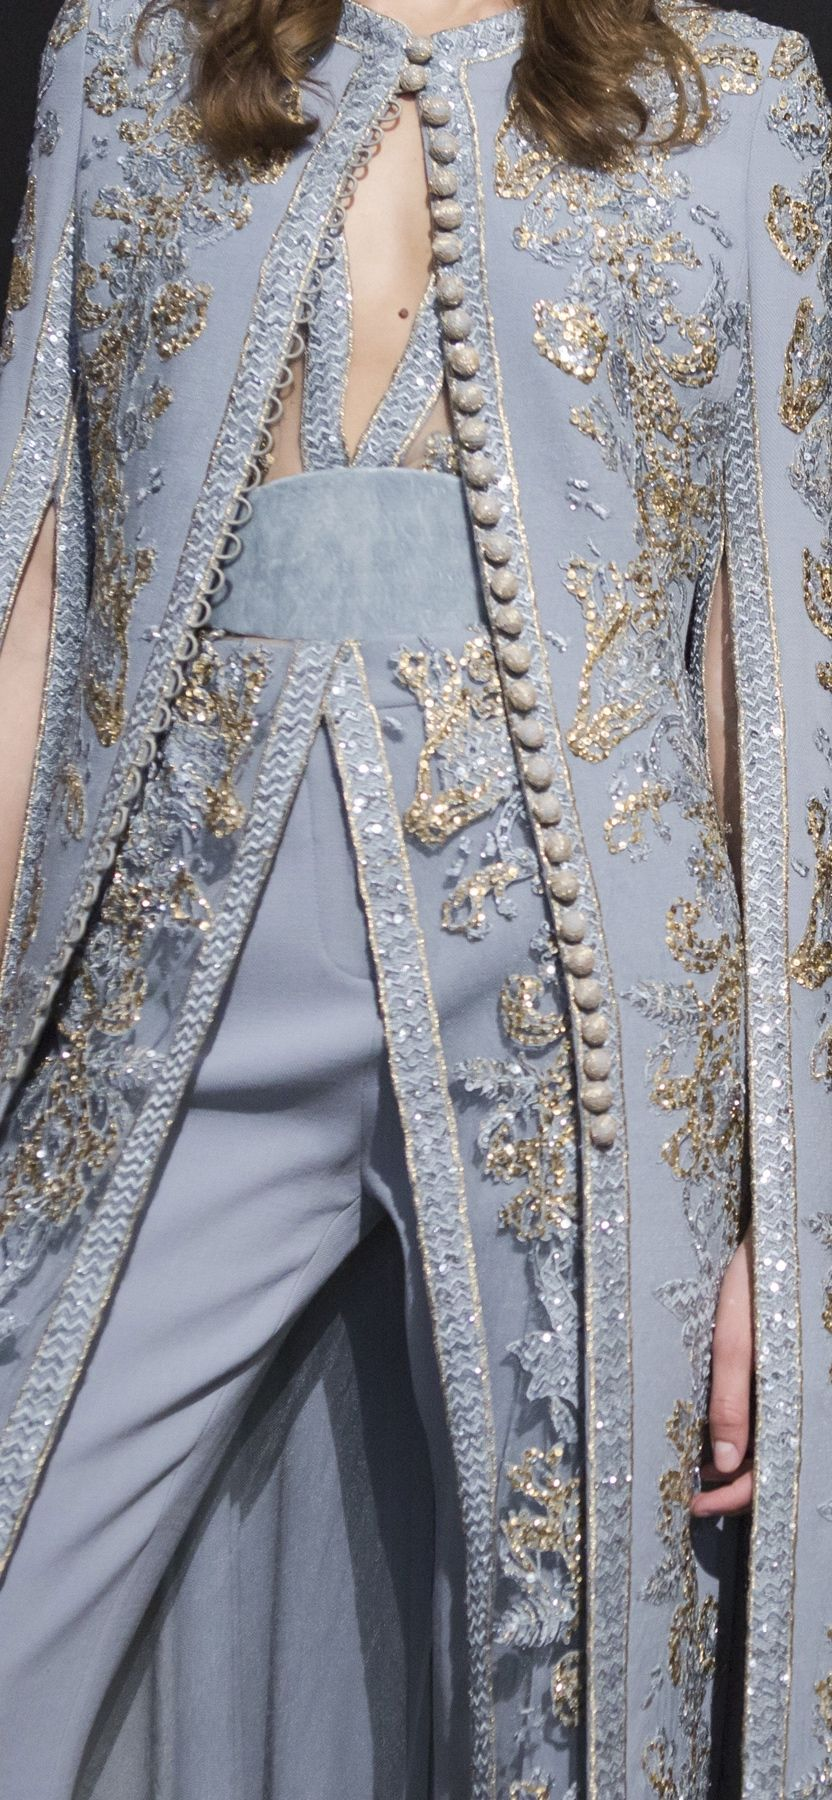 Elie saab fall haute couture МЕХАМОДА pinterest elie